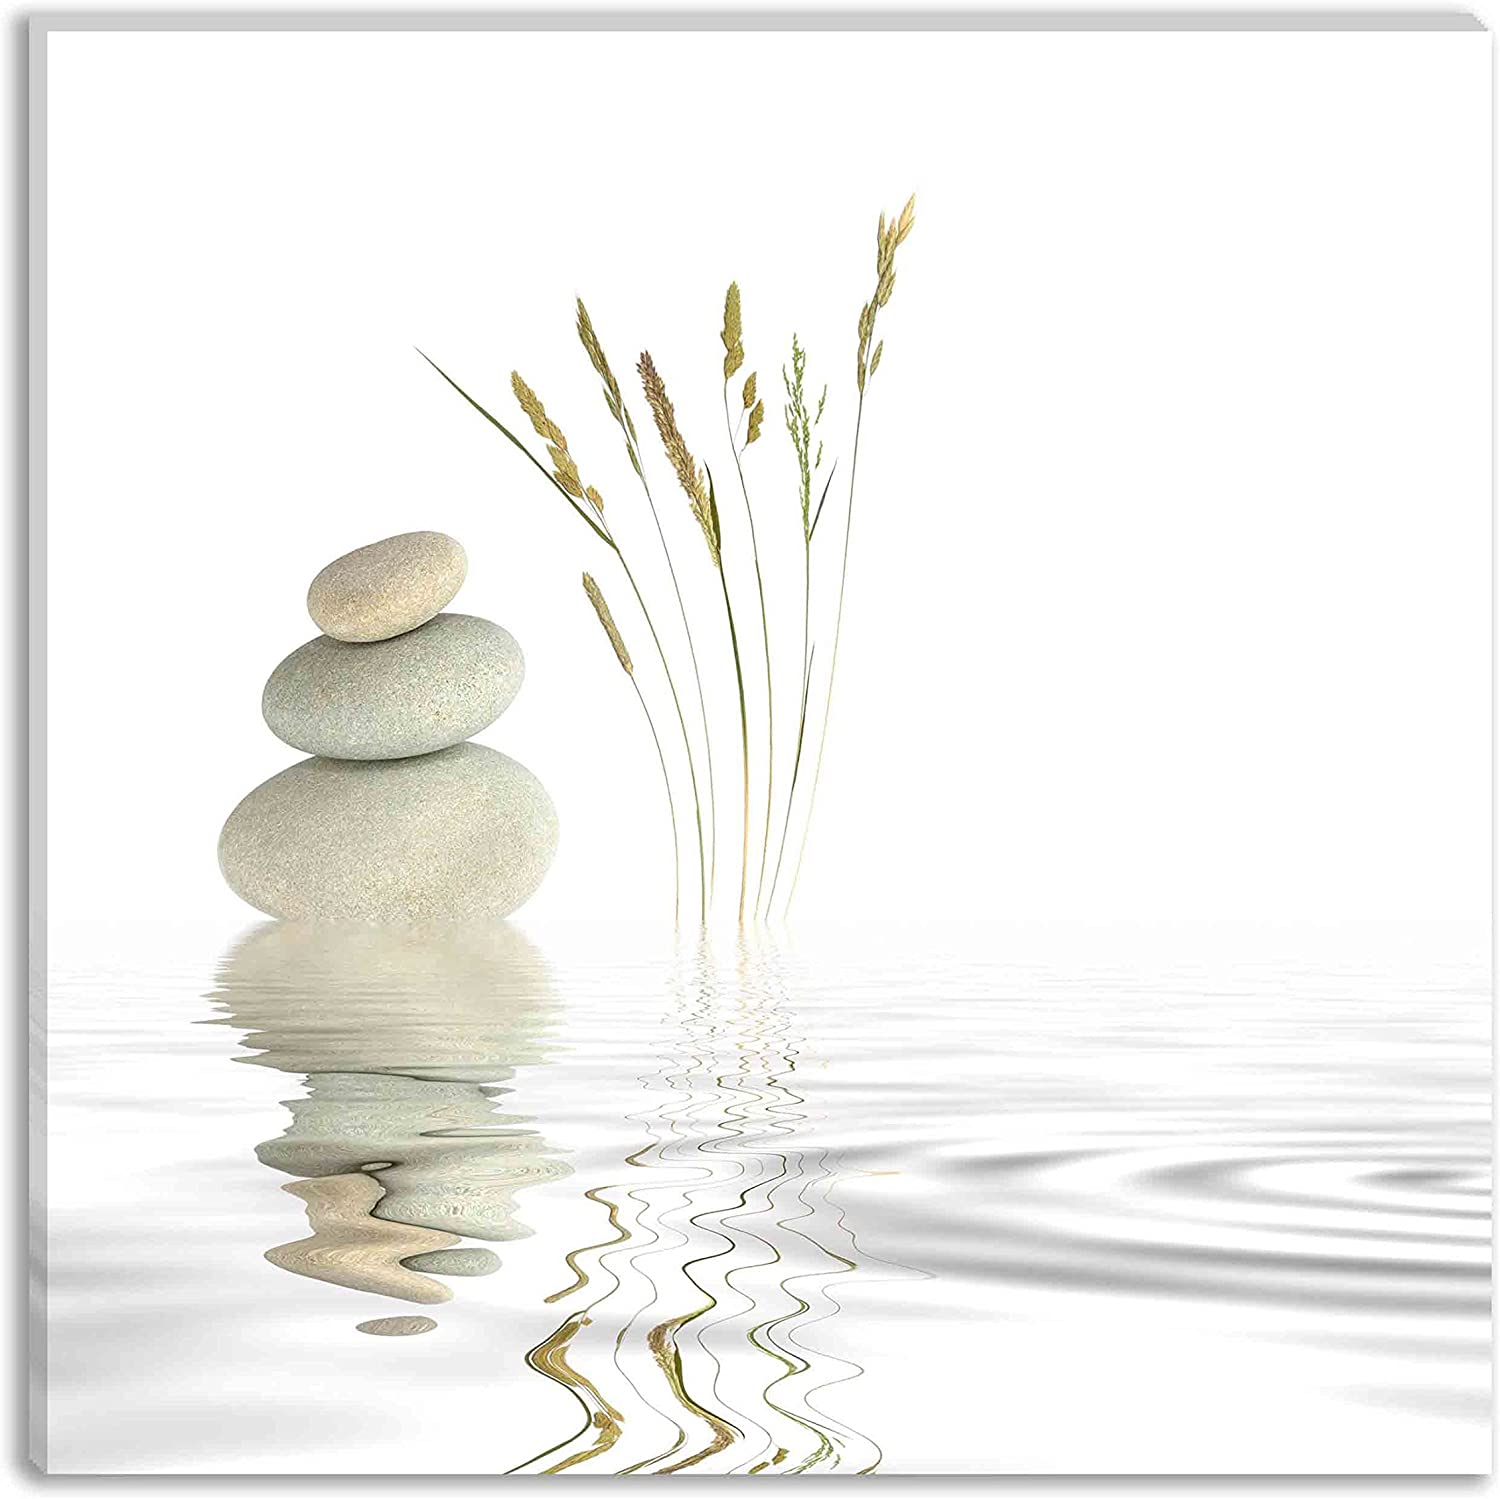 yuanclllp - Still Life Wall Art Decor Zen Garden Abstract of Spa Stones Natural Wild Grasses and Reflection in Rippled Grey Water Picture Print on Canvas for Modern Home Decoration